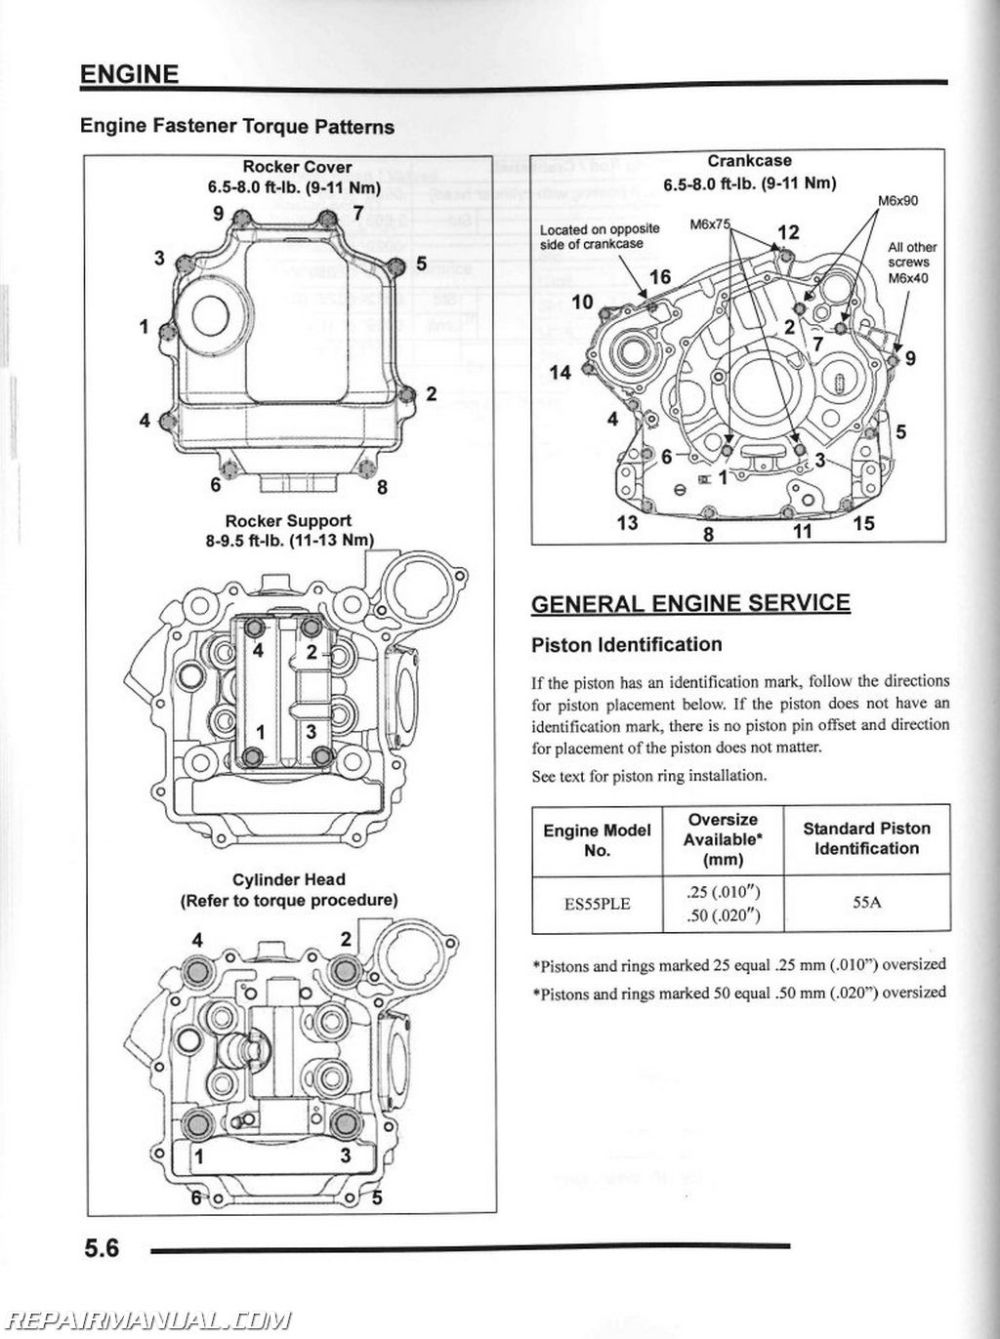 medium resolution of 2010 polaris sportsman xp 550 atv service manual 2009 polaris rzr 800 wiring diagram 2009 polaris